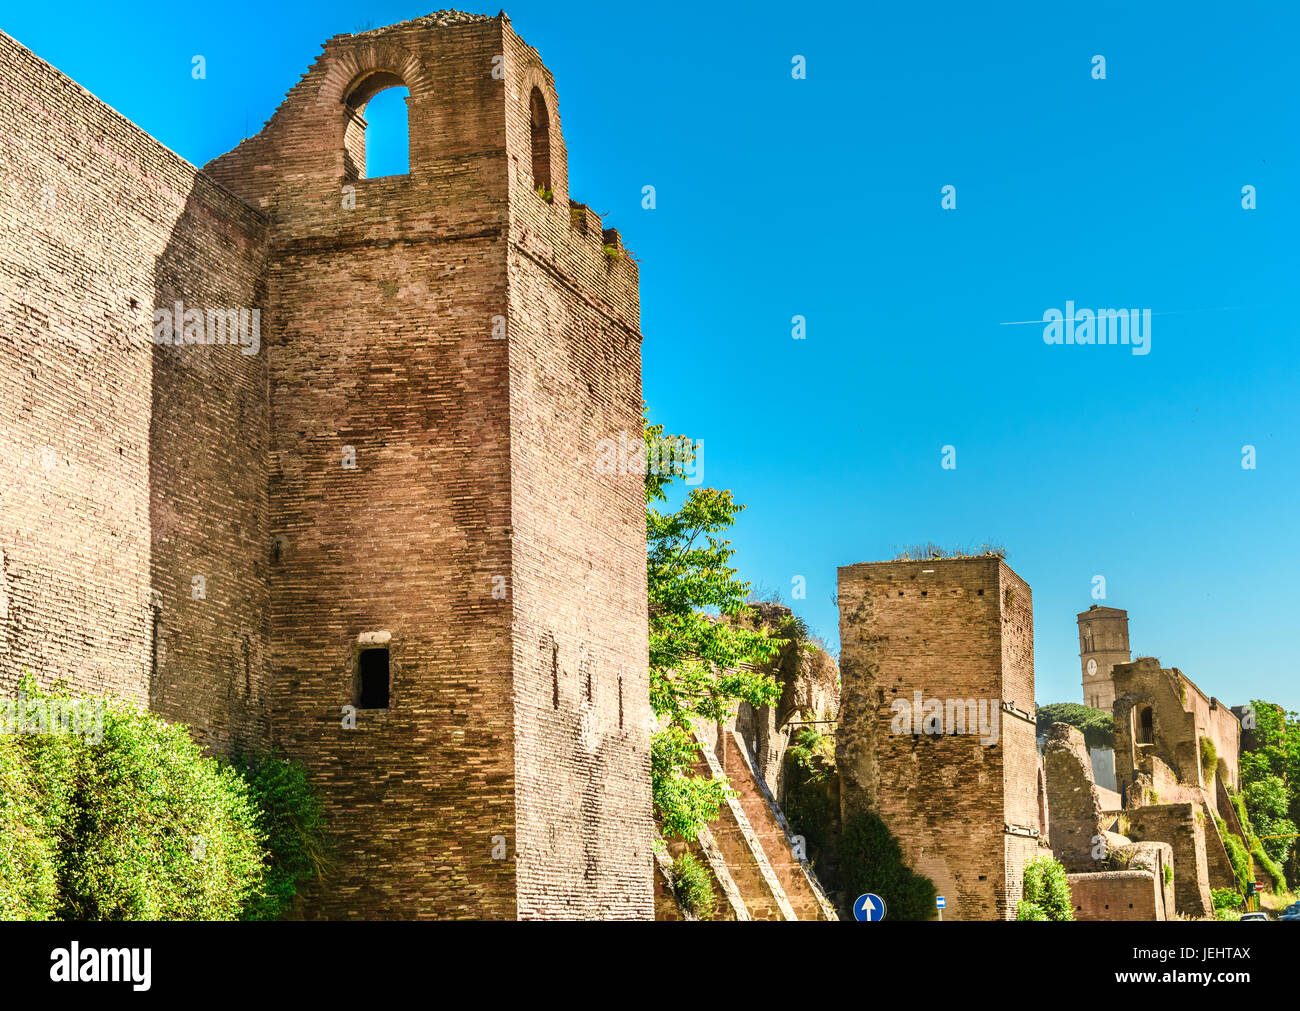 The Aurelian Walls are a line of city walls built between 271 AD and 275 AD in Rome, Italy, during the reign of - Stock Image